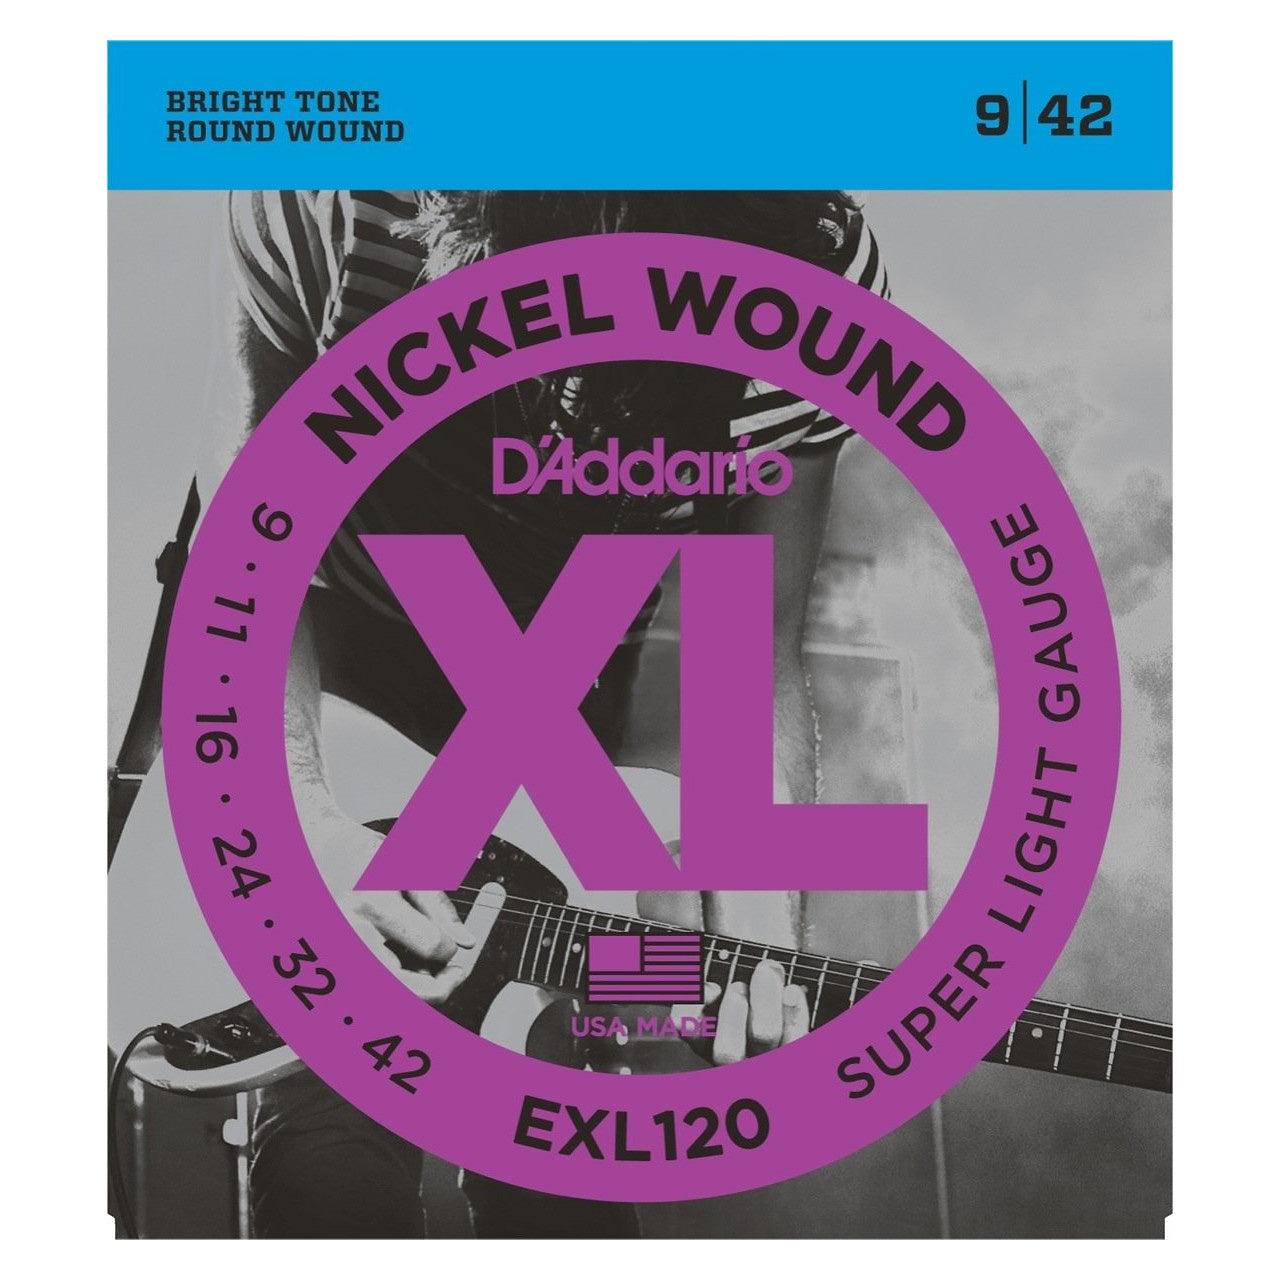 D'Addario EXL120 XL Electric Guitar Strings (Super Light, 9-42), 3-Pack